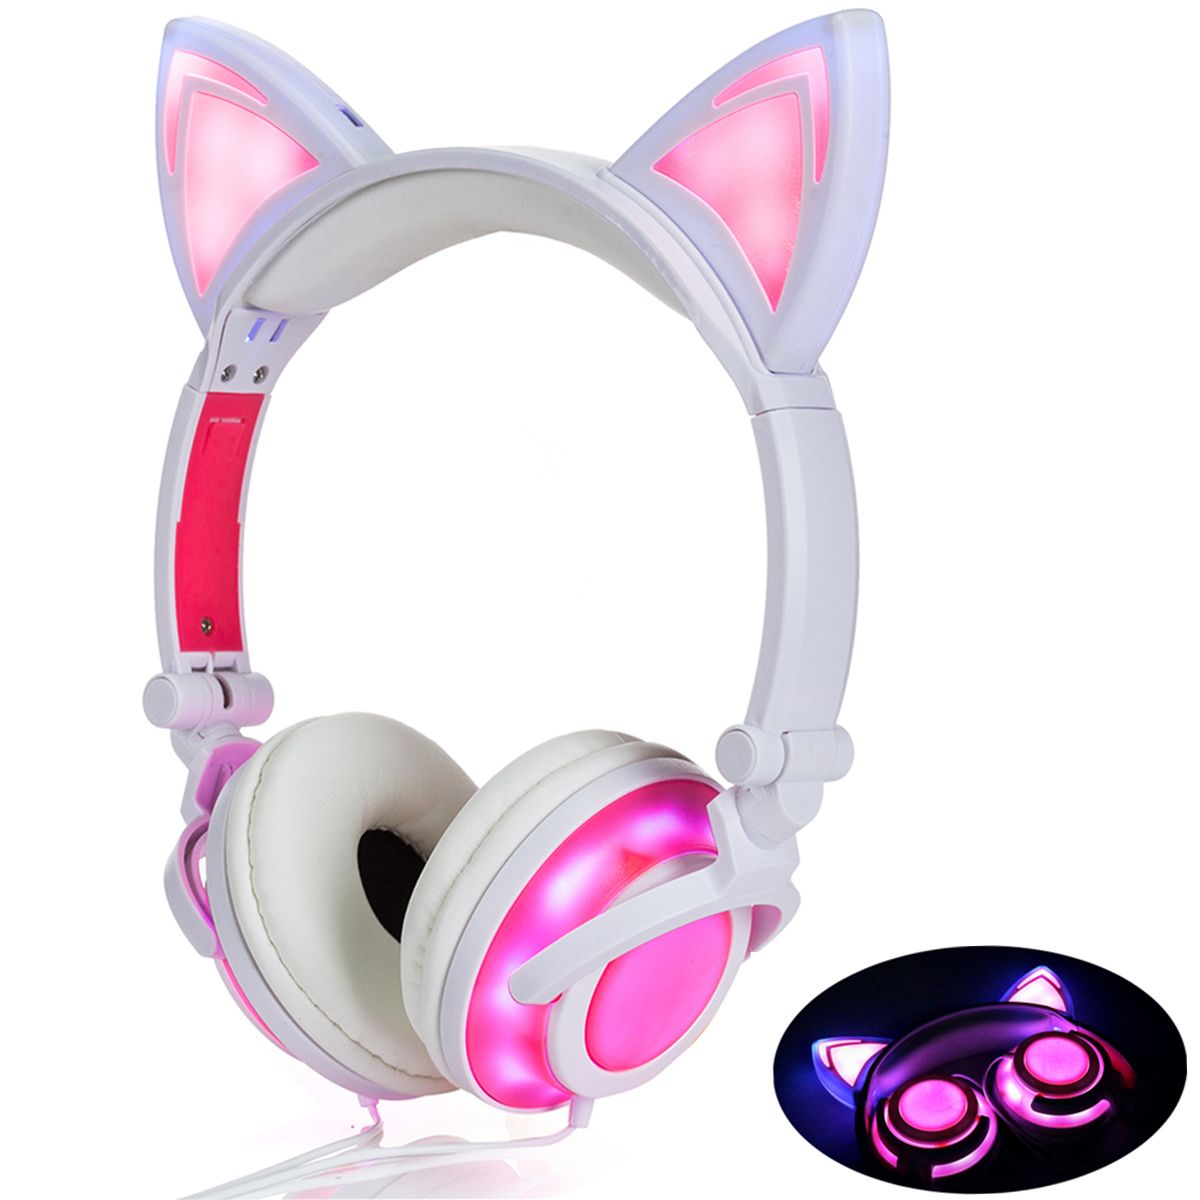 Cat Ear Headphones With Led Light On Glowing Led Light Button On The Back Of Cat Ear Foldable And Chargeable Suitabl Cute Headphones Headphones Cat Ear Headset